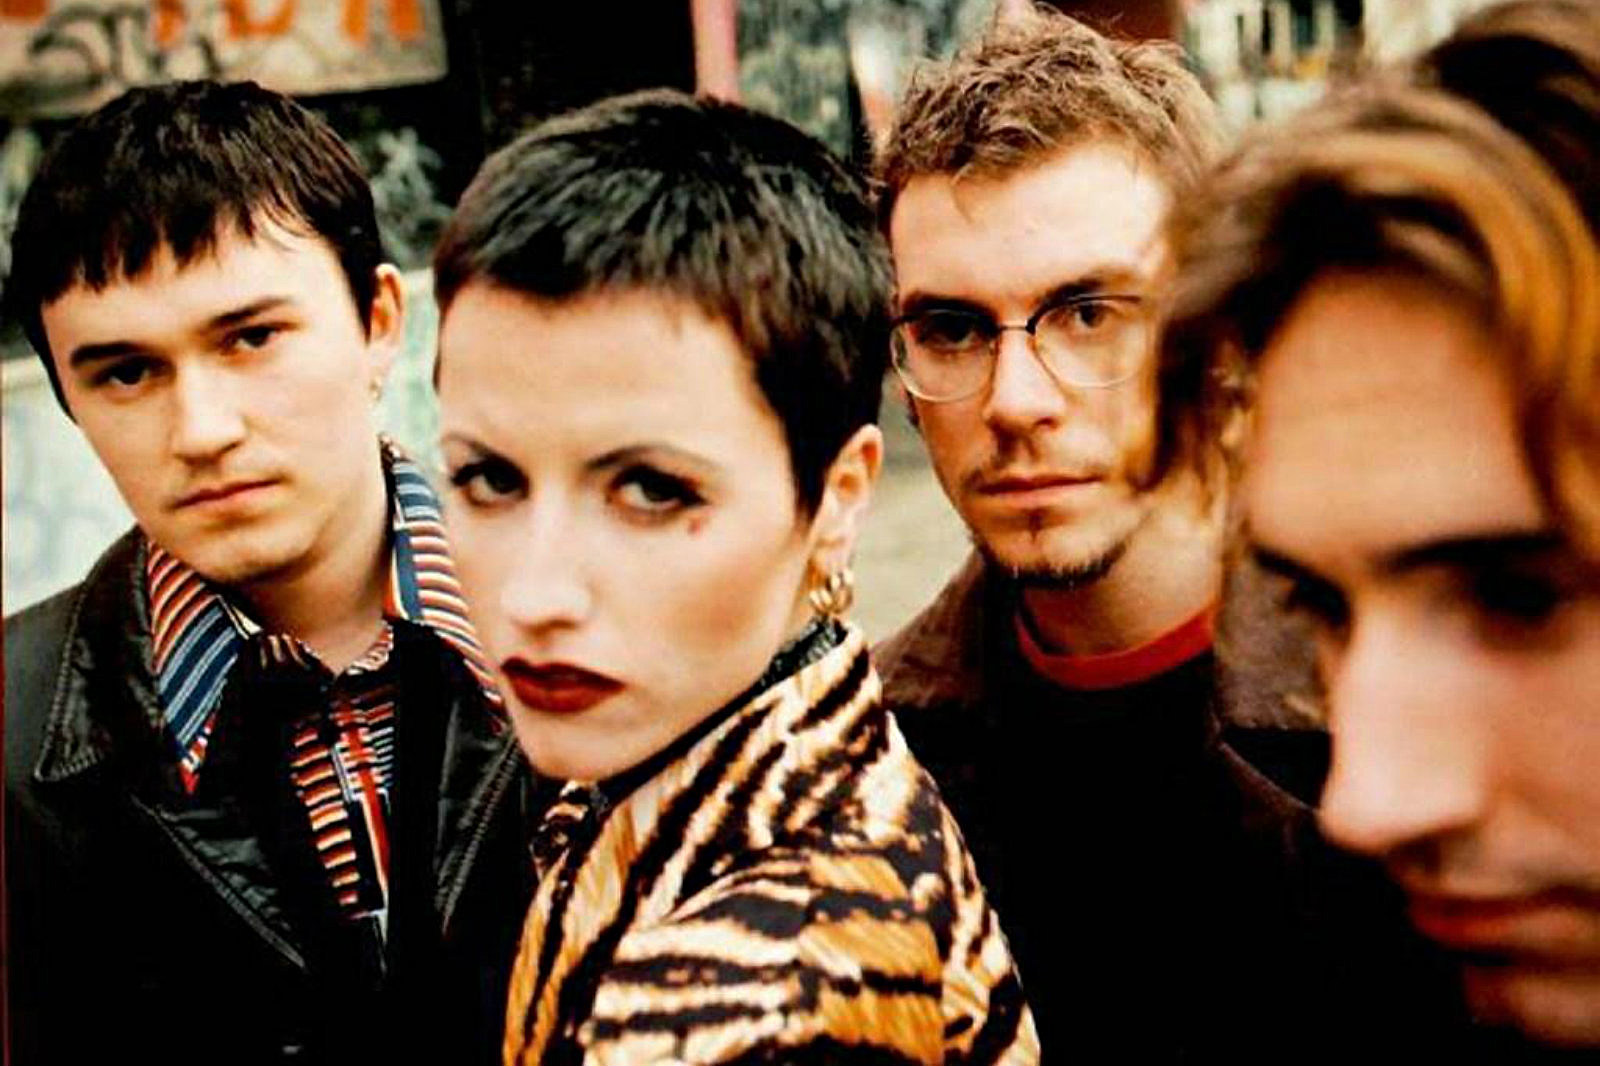 Give Me Five...Featuring The Cranberries